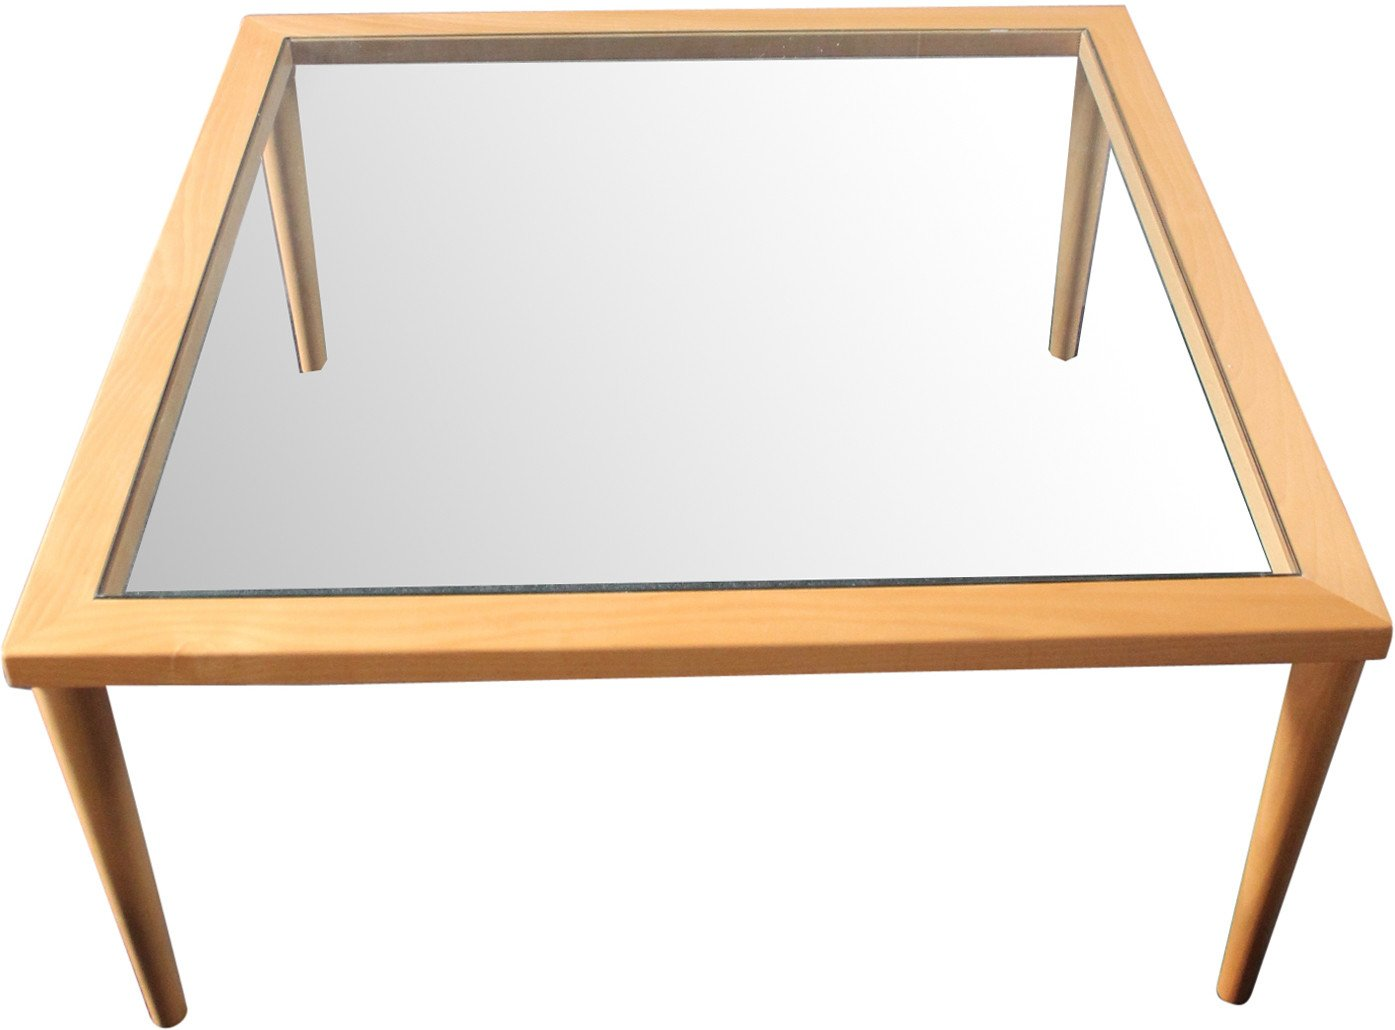 Coffee Table, Calligaris, Italy